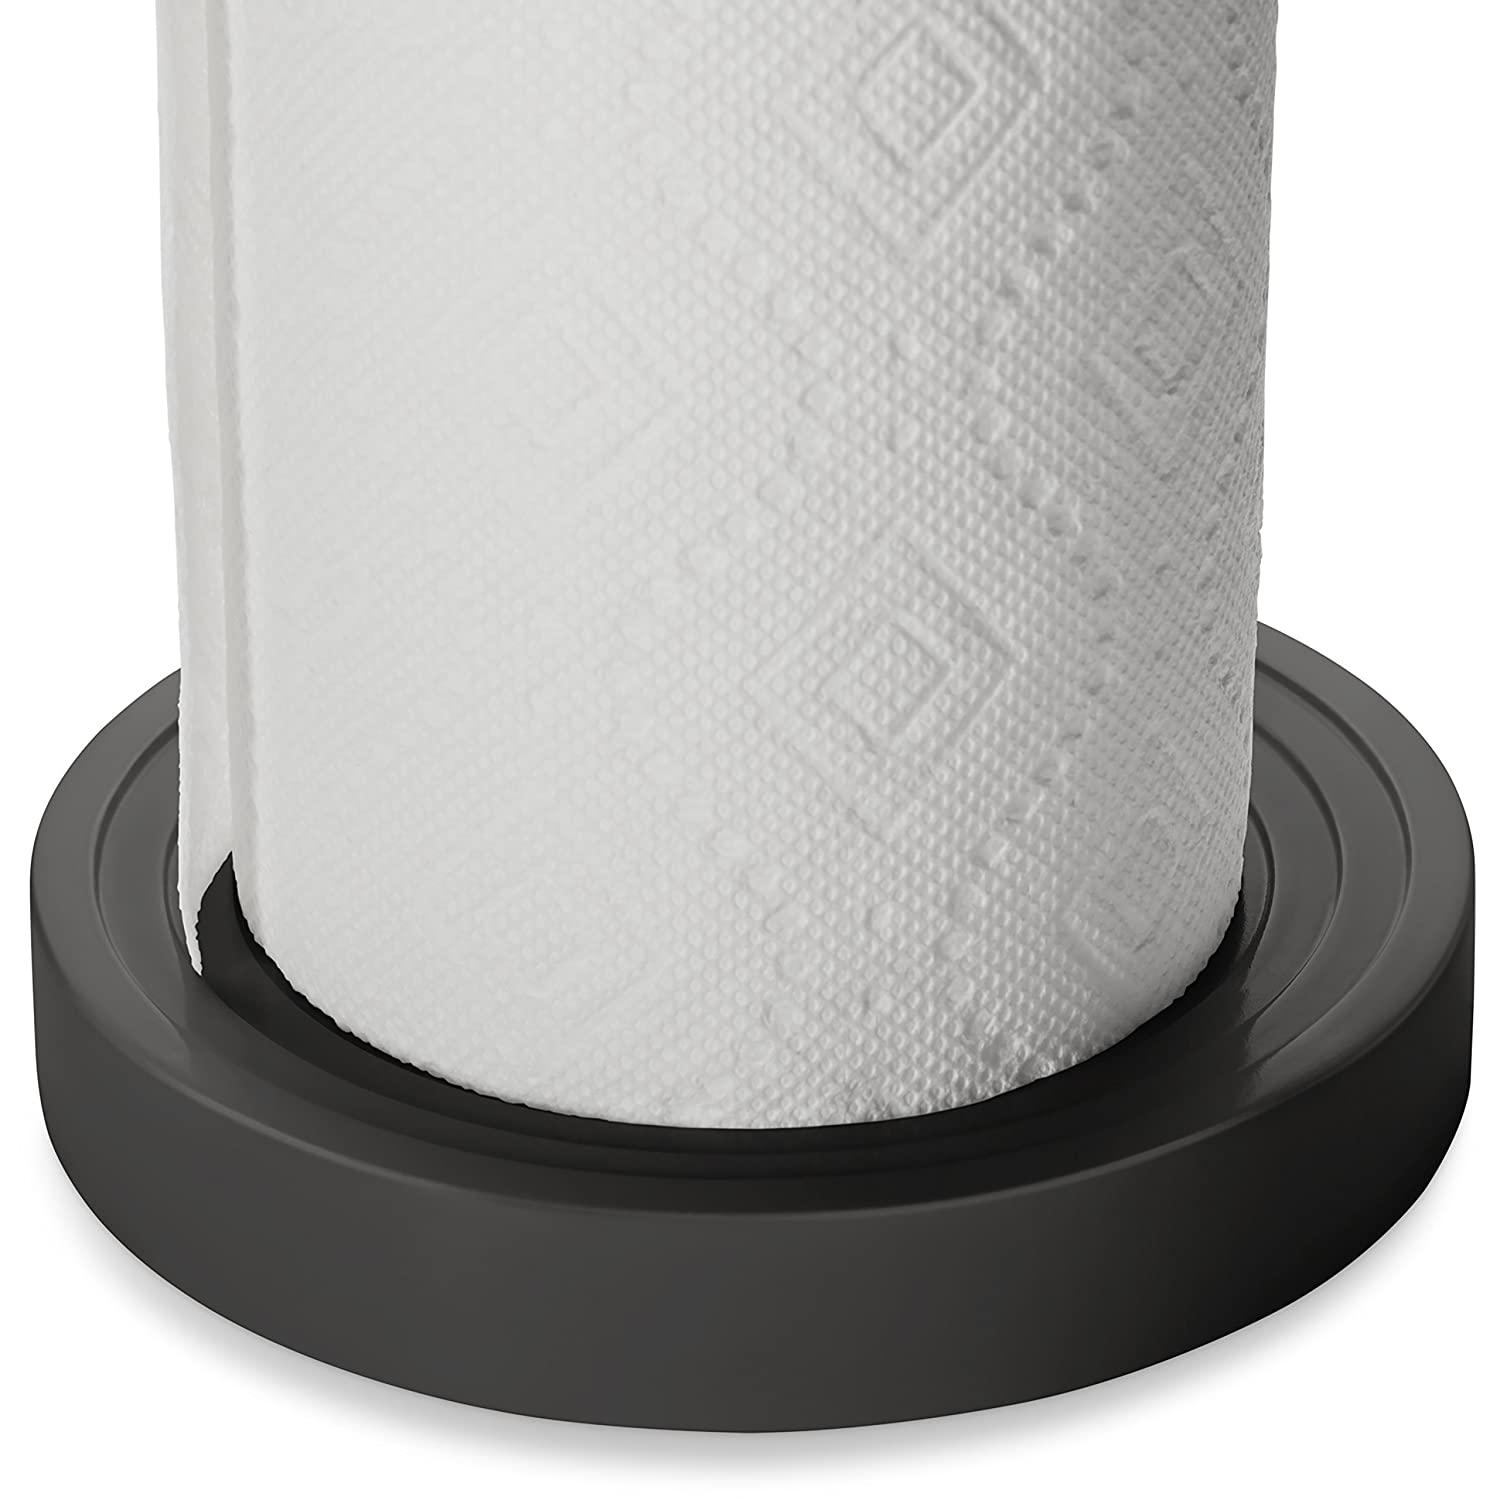 KOHLER Paper Towel Holder with Weighted Base, Tension Loop, Quick One Handed Tear, (Fits Standard and Oversized Rolls), Charcoal